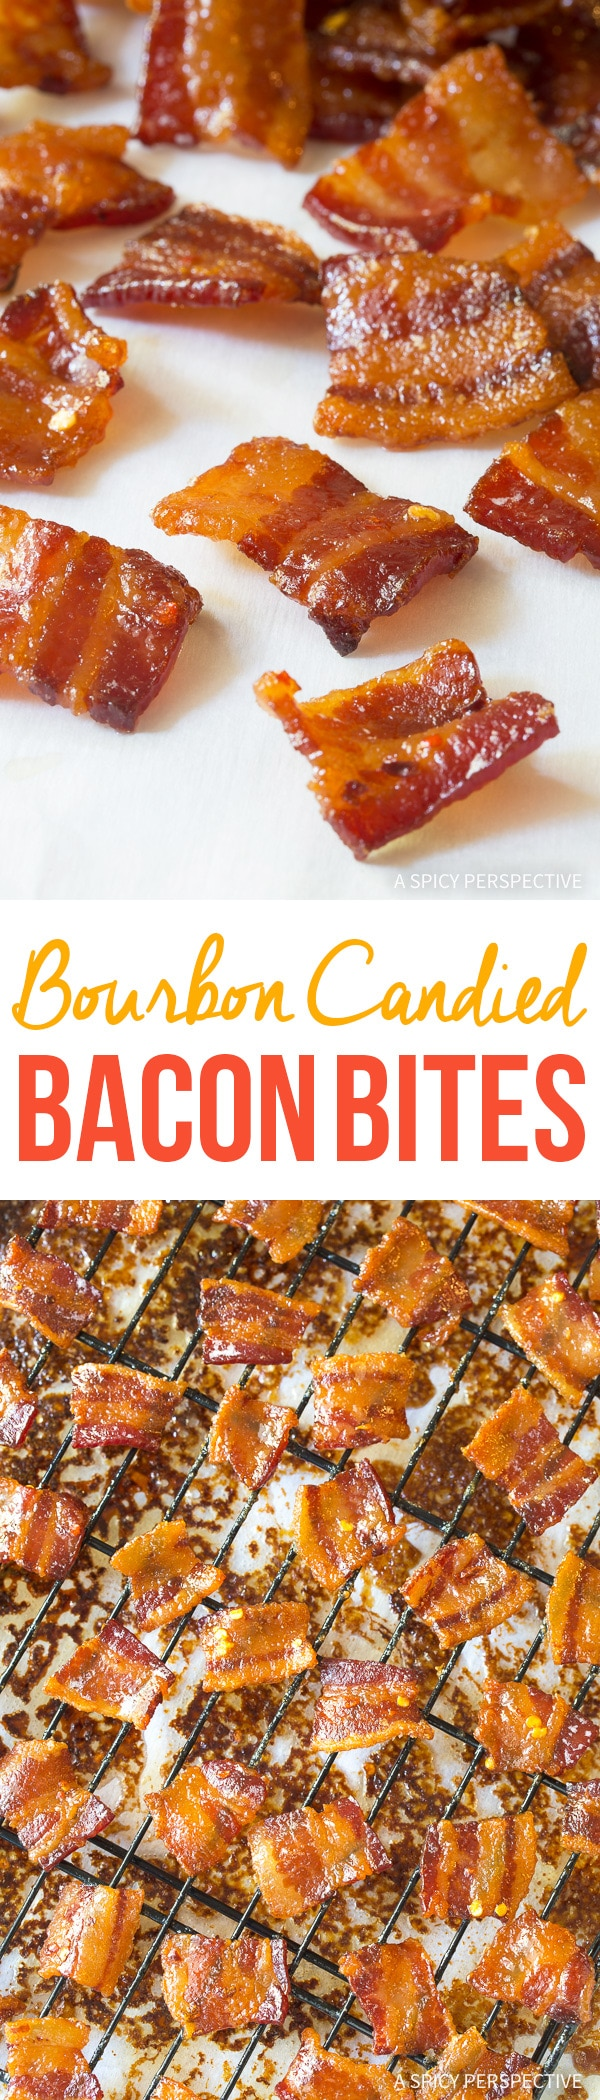 Holiday Gifts! Bourbon Candied Bacon Bites - AKA Pig Candy